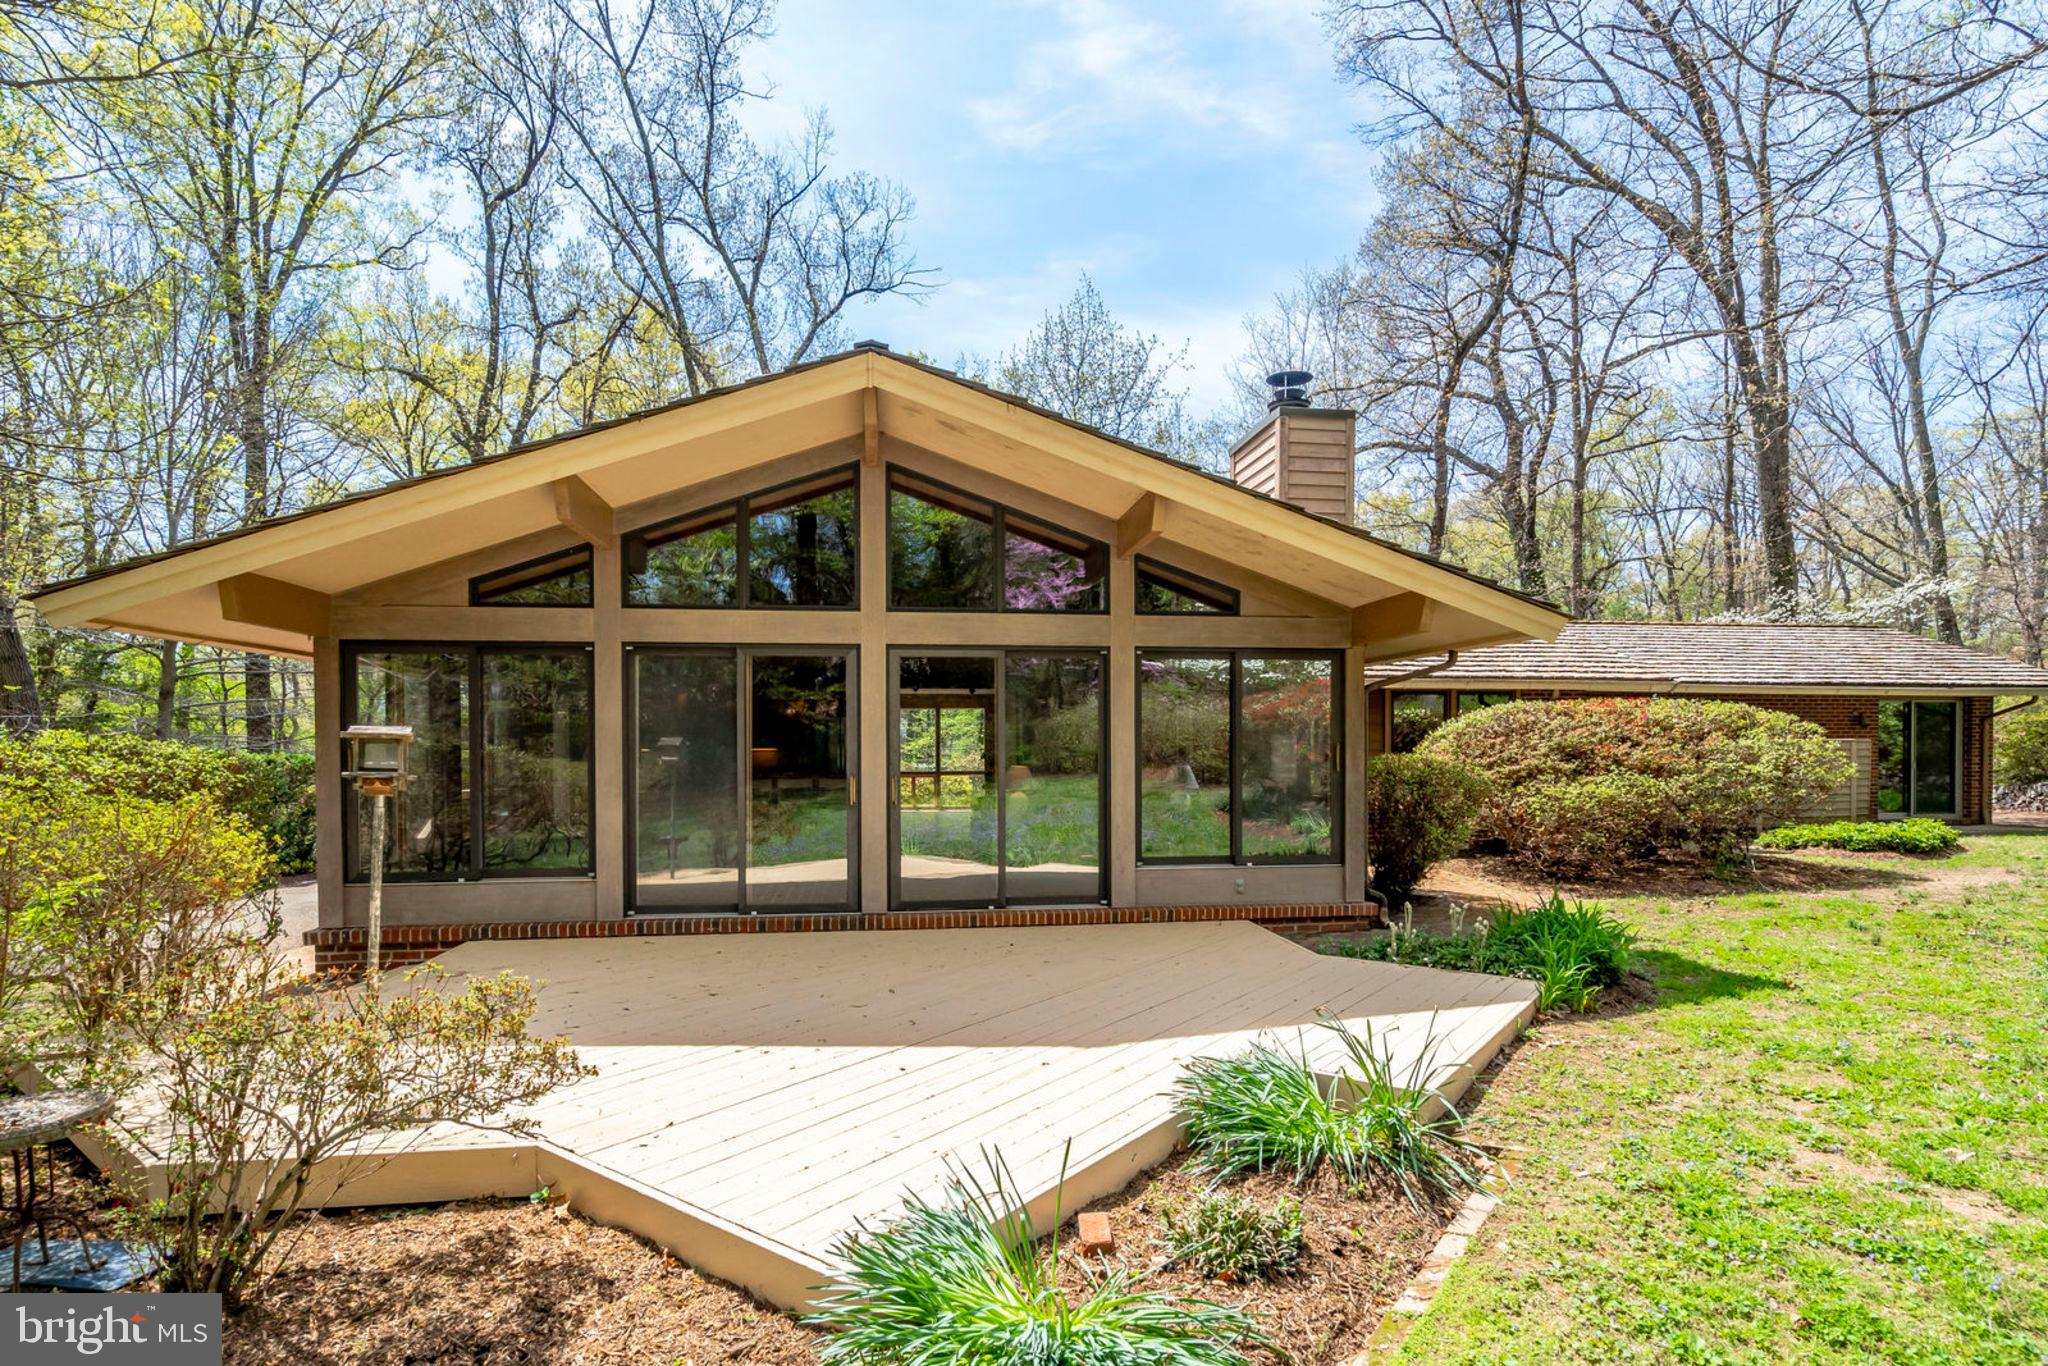 Beautiful Mid-Century Modern home designed by architect owner. Gracious spaces with extensive use of glass and natural materials forge a strong connection with nature. Gorgeous landscaped, private property encompasses 2 ~ lots - over 1.15 acres total.  Open concept, 4 bedroom, 2 bath home inspires wonderful opportunities.